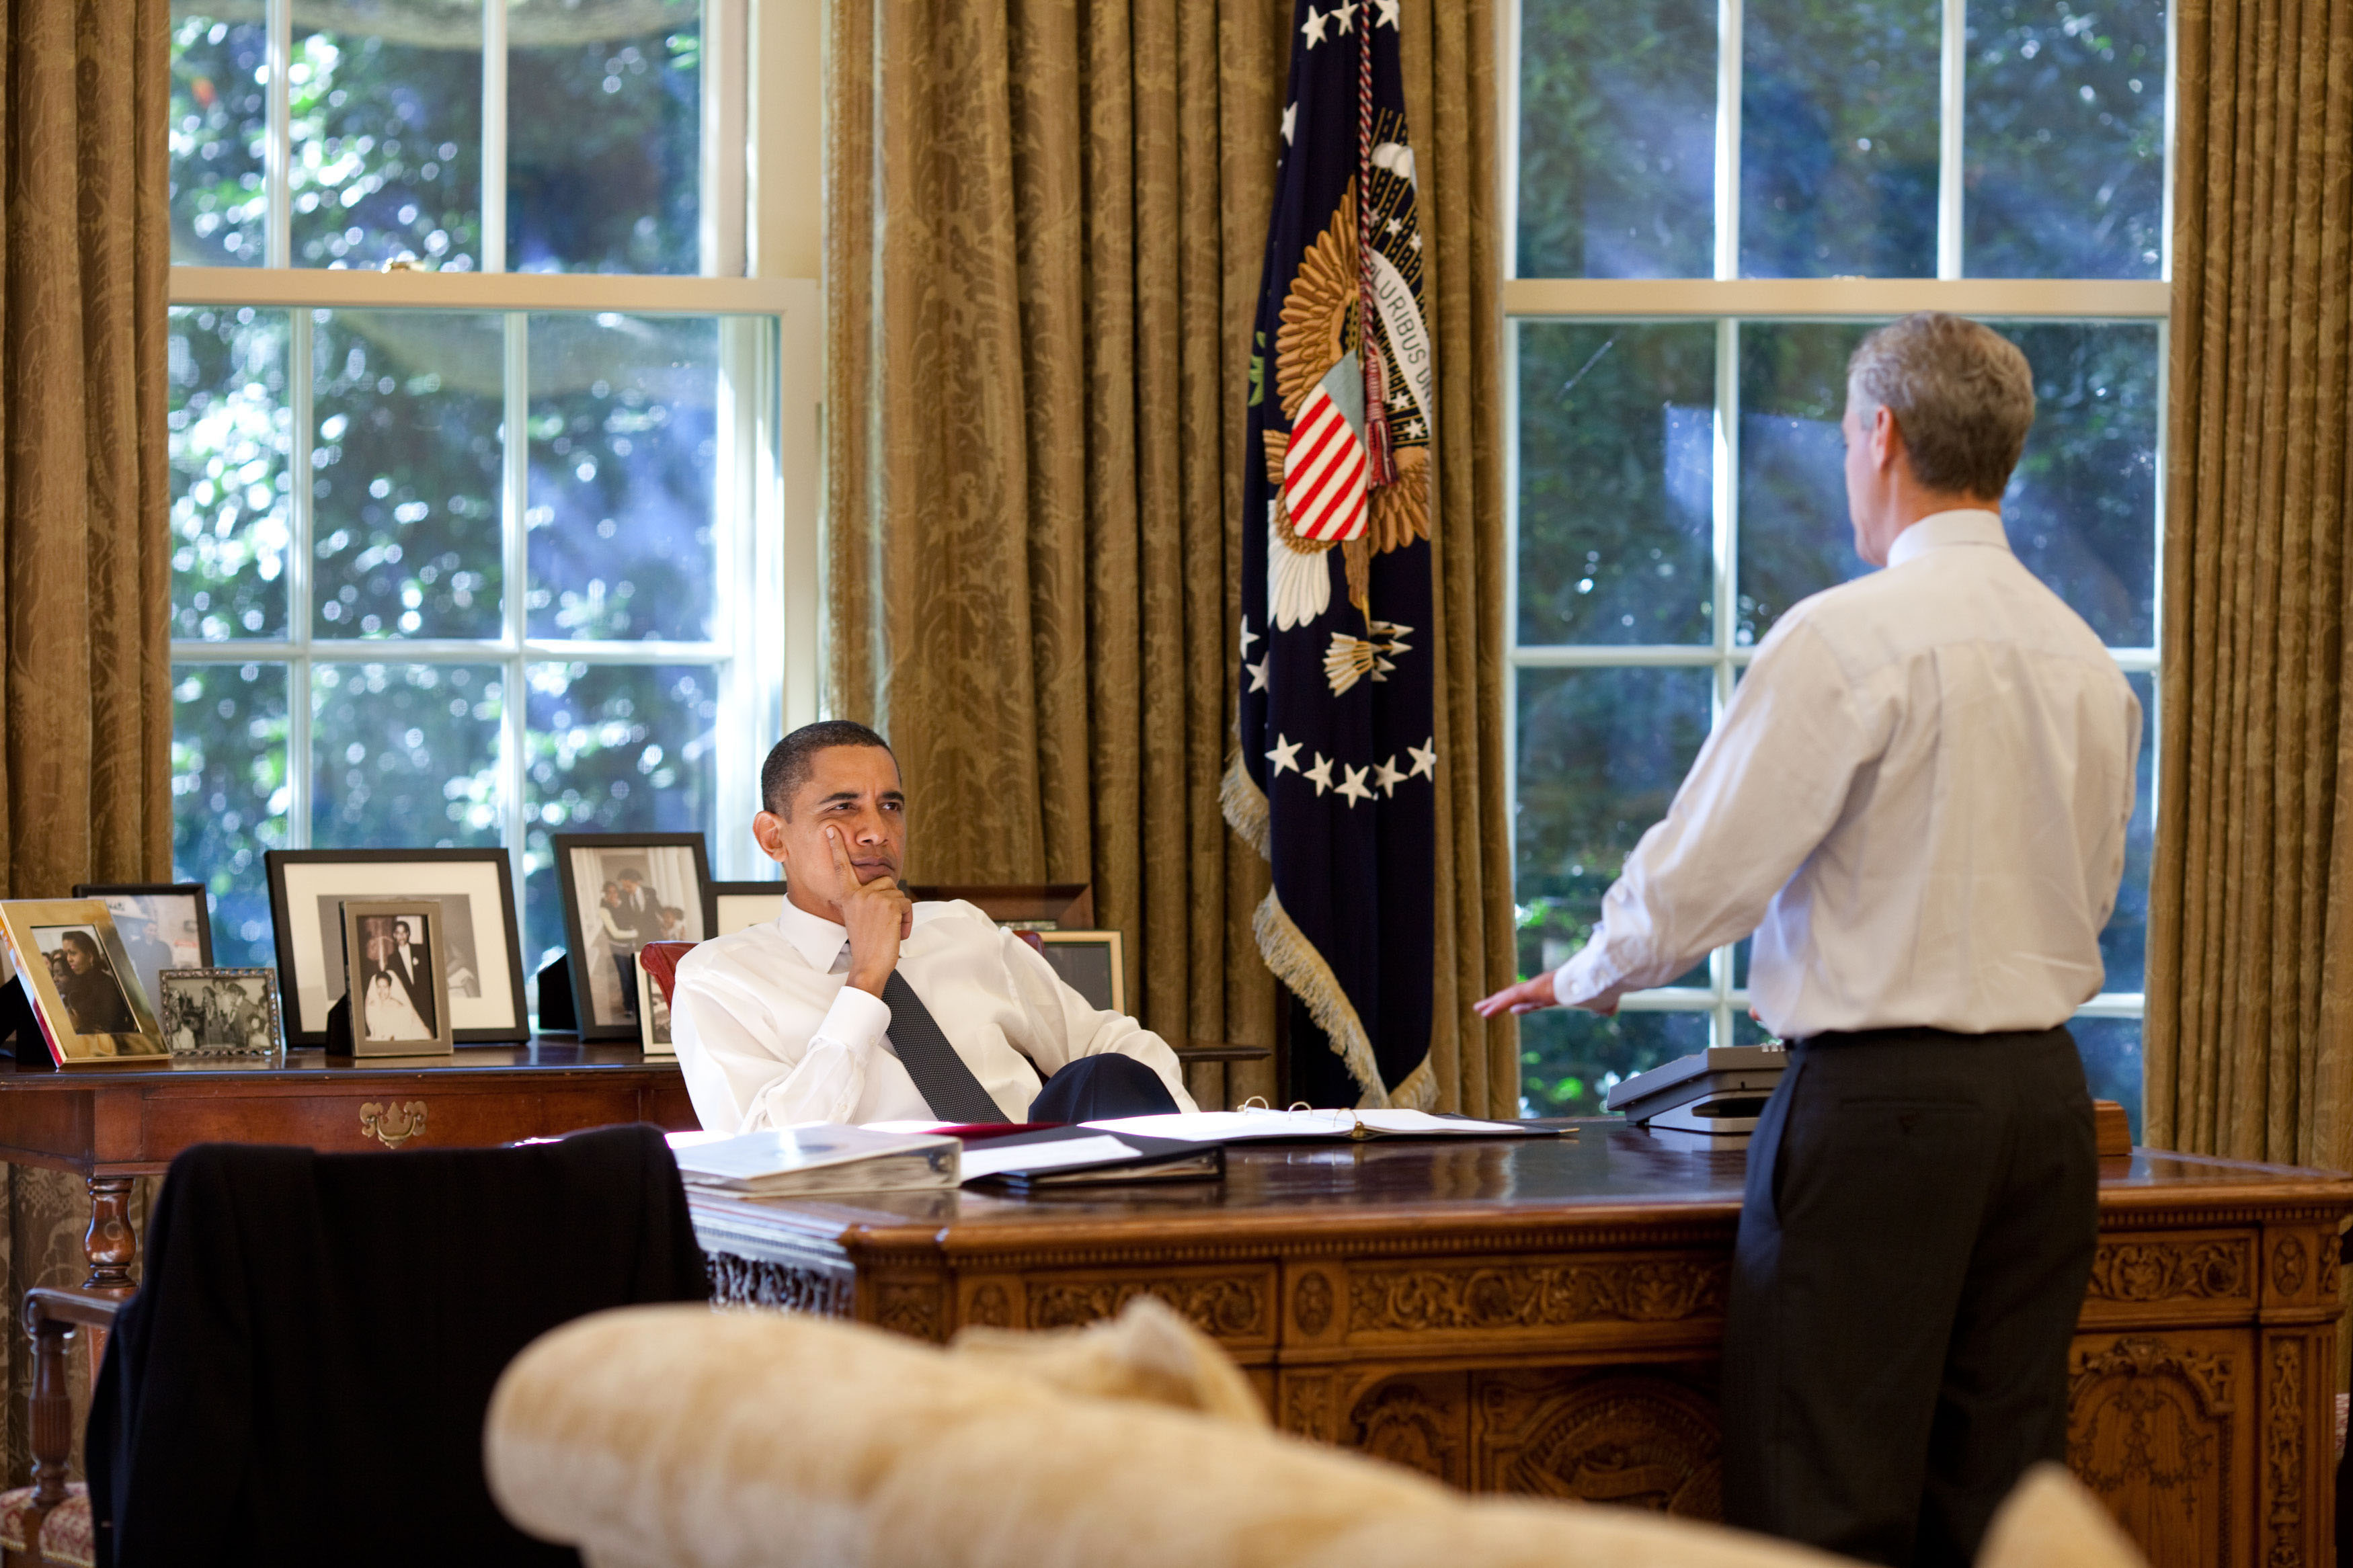 Obama Resolute Desk File Barack Obama And Rahm Emanuel In The Oval Office 10